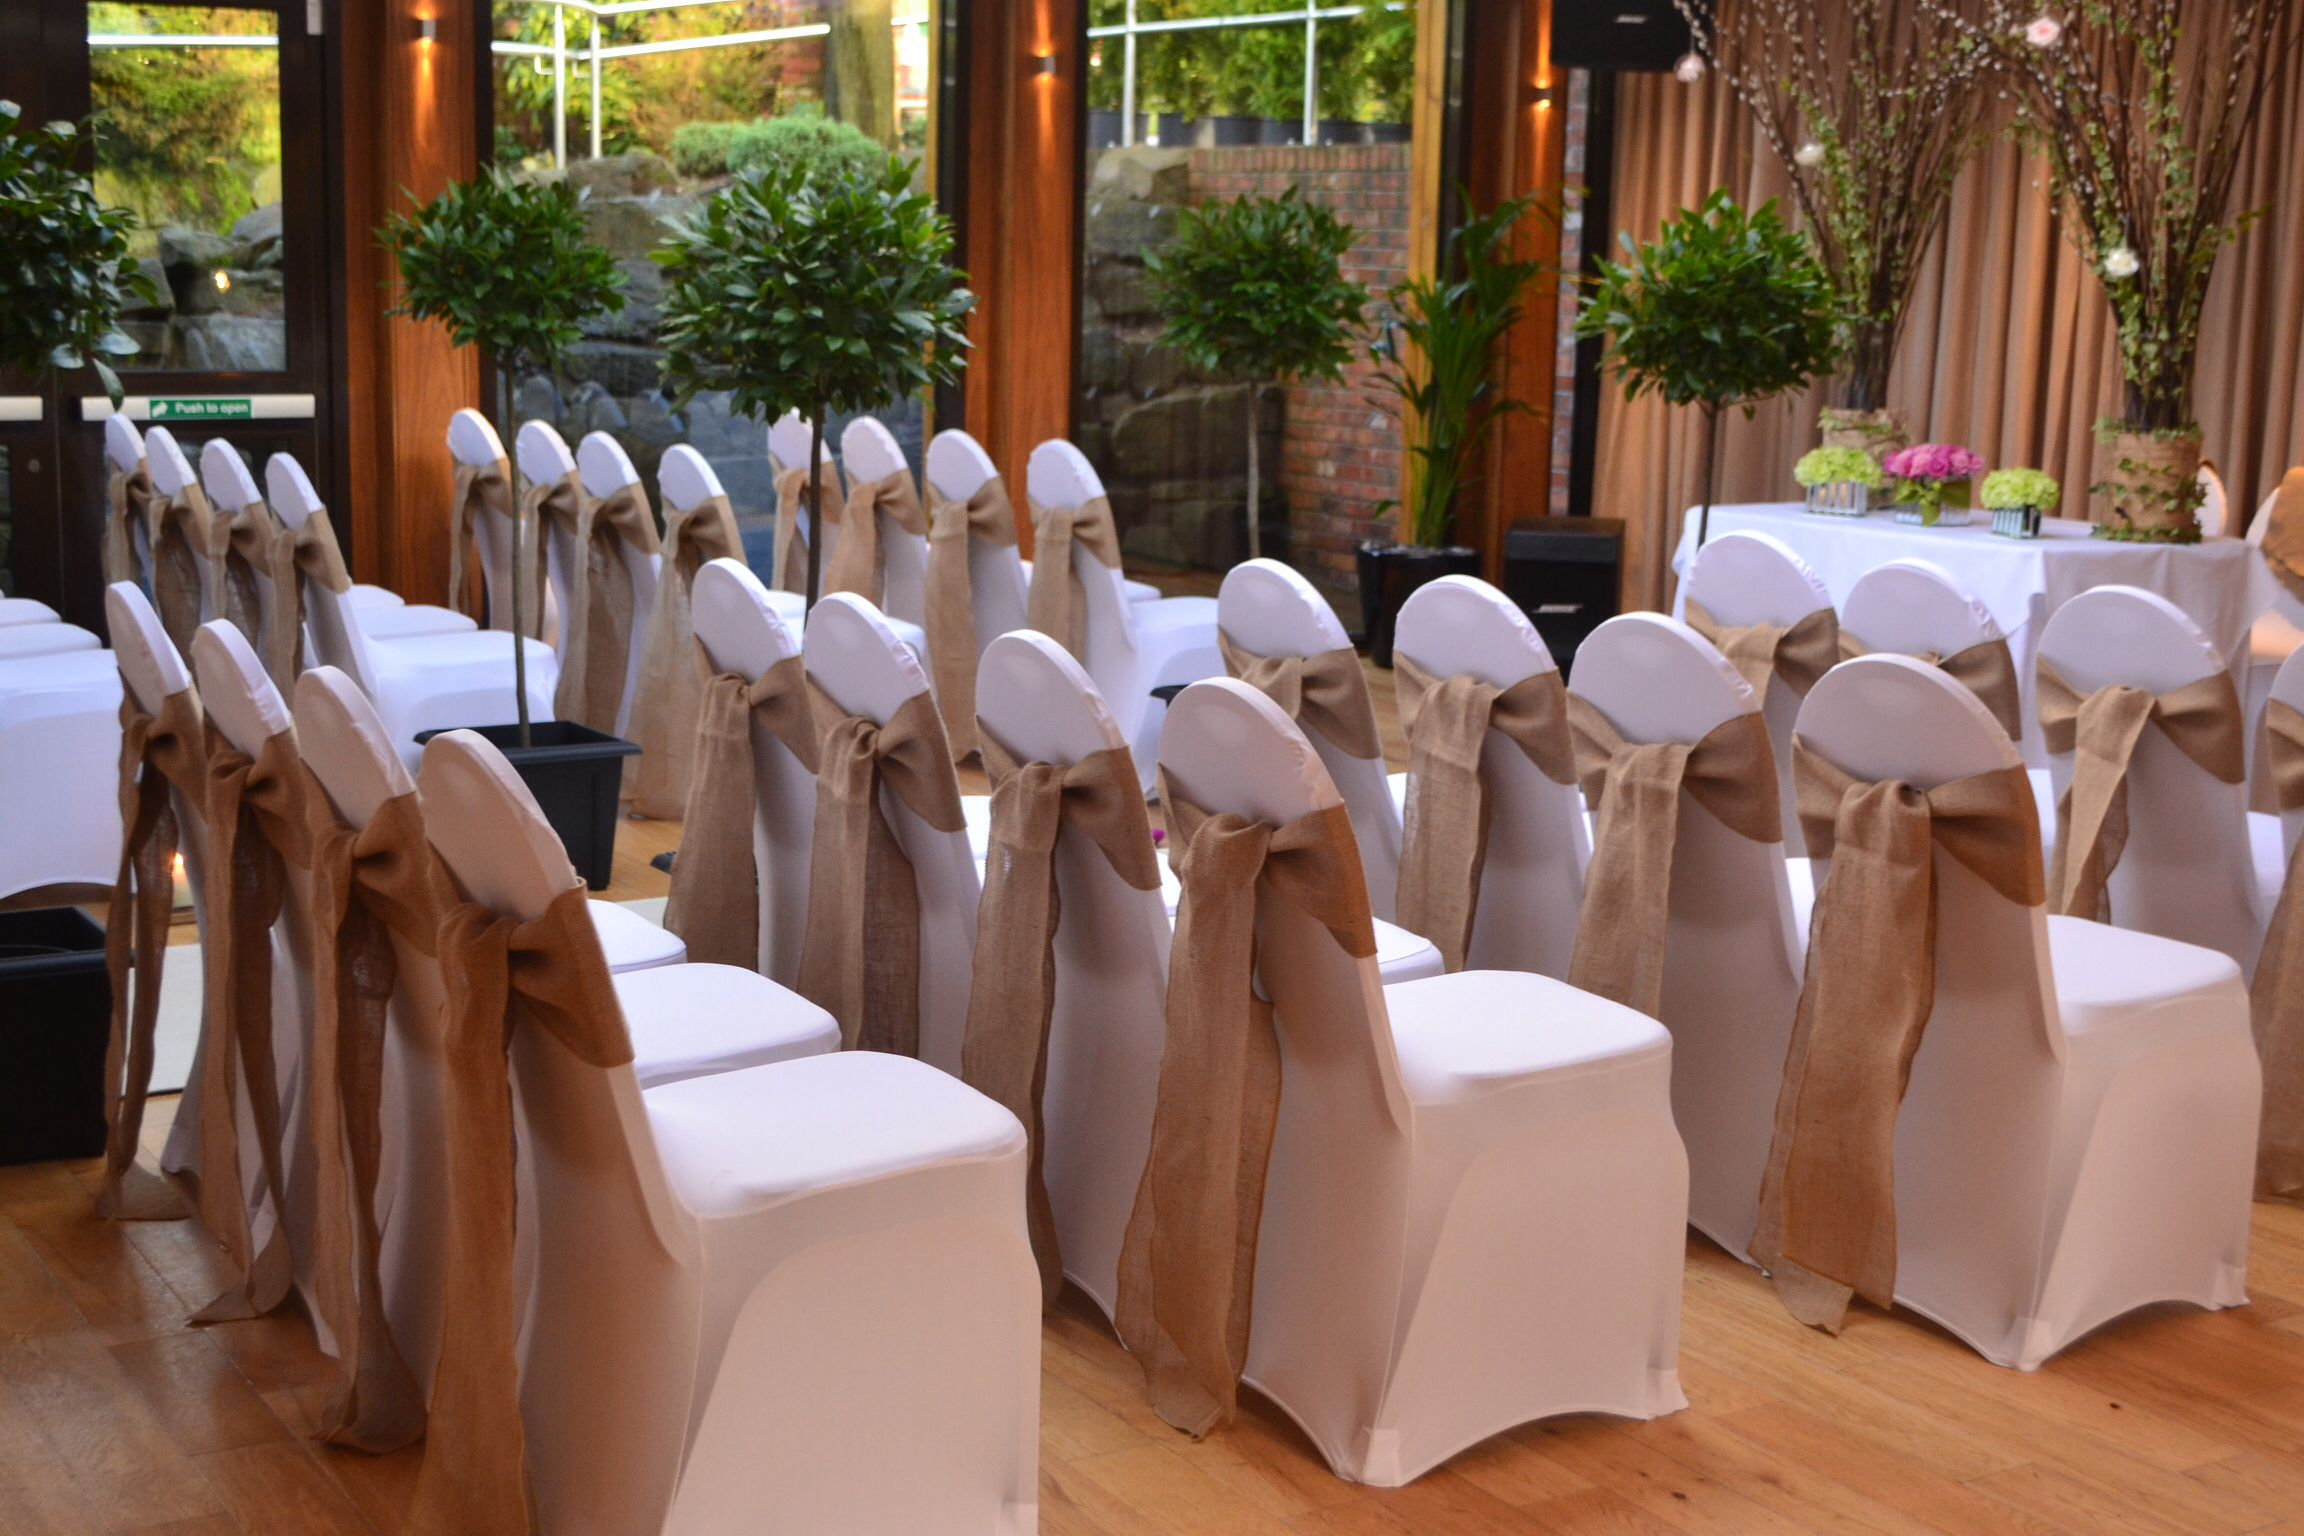 Gorgeous hessian chair covers from